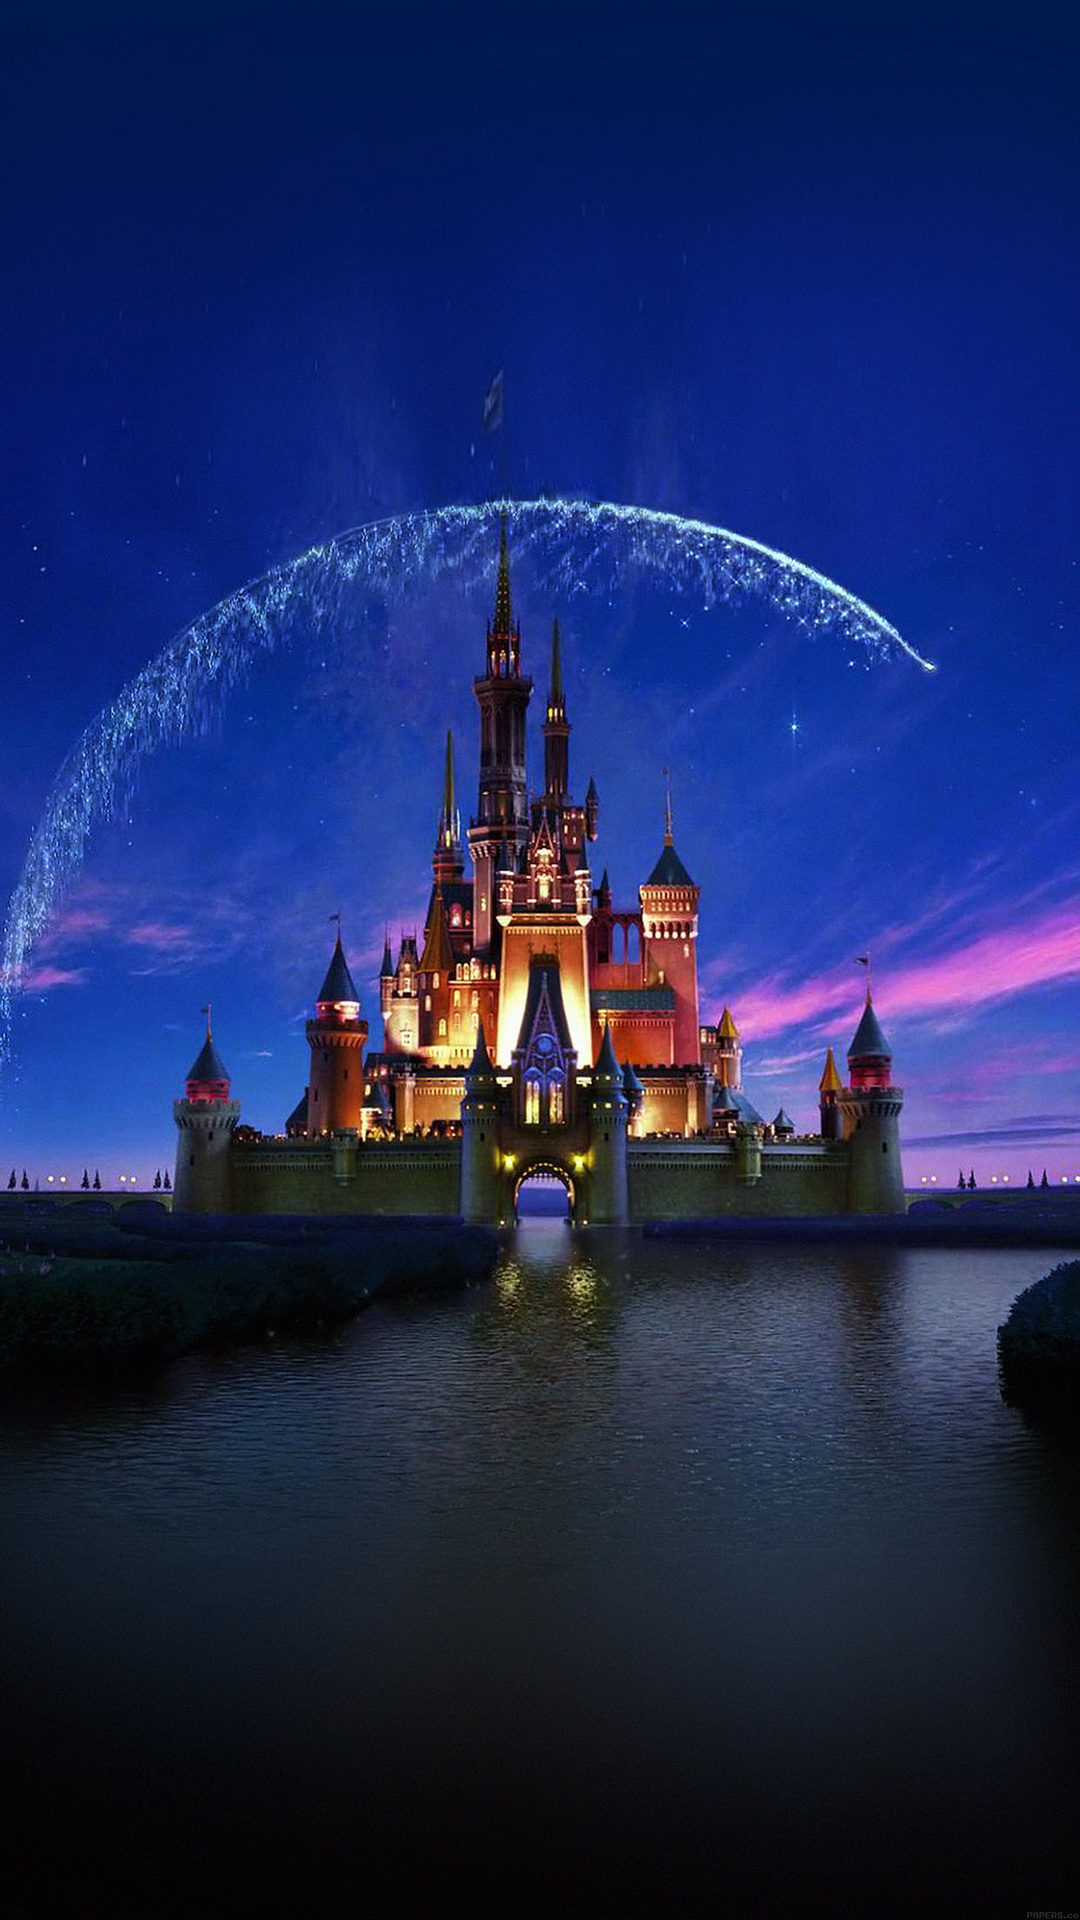 Disney Castle - Top 10 HTC One M9 wallpapers free download